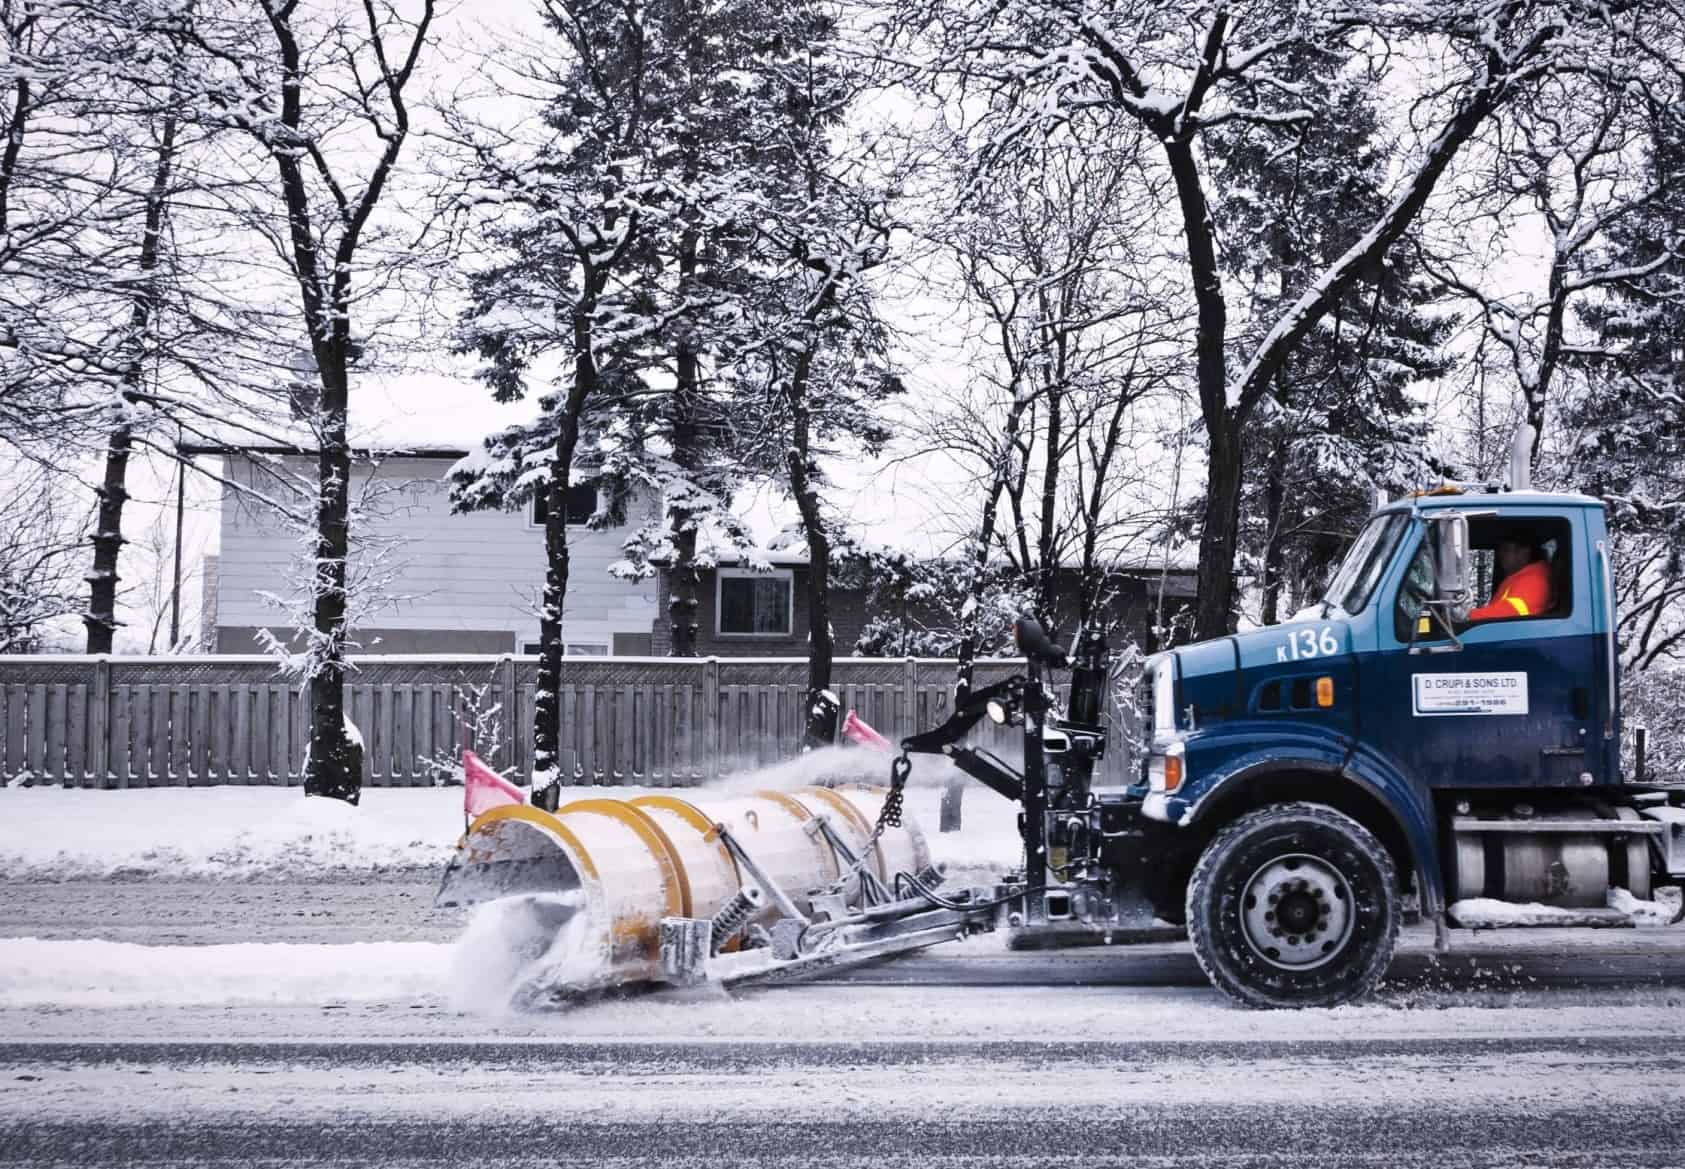 Patrick's Mobile snow plow truck plowing London Ontario streets